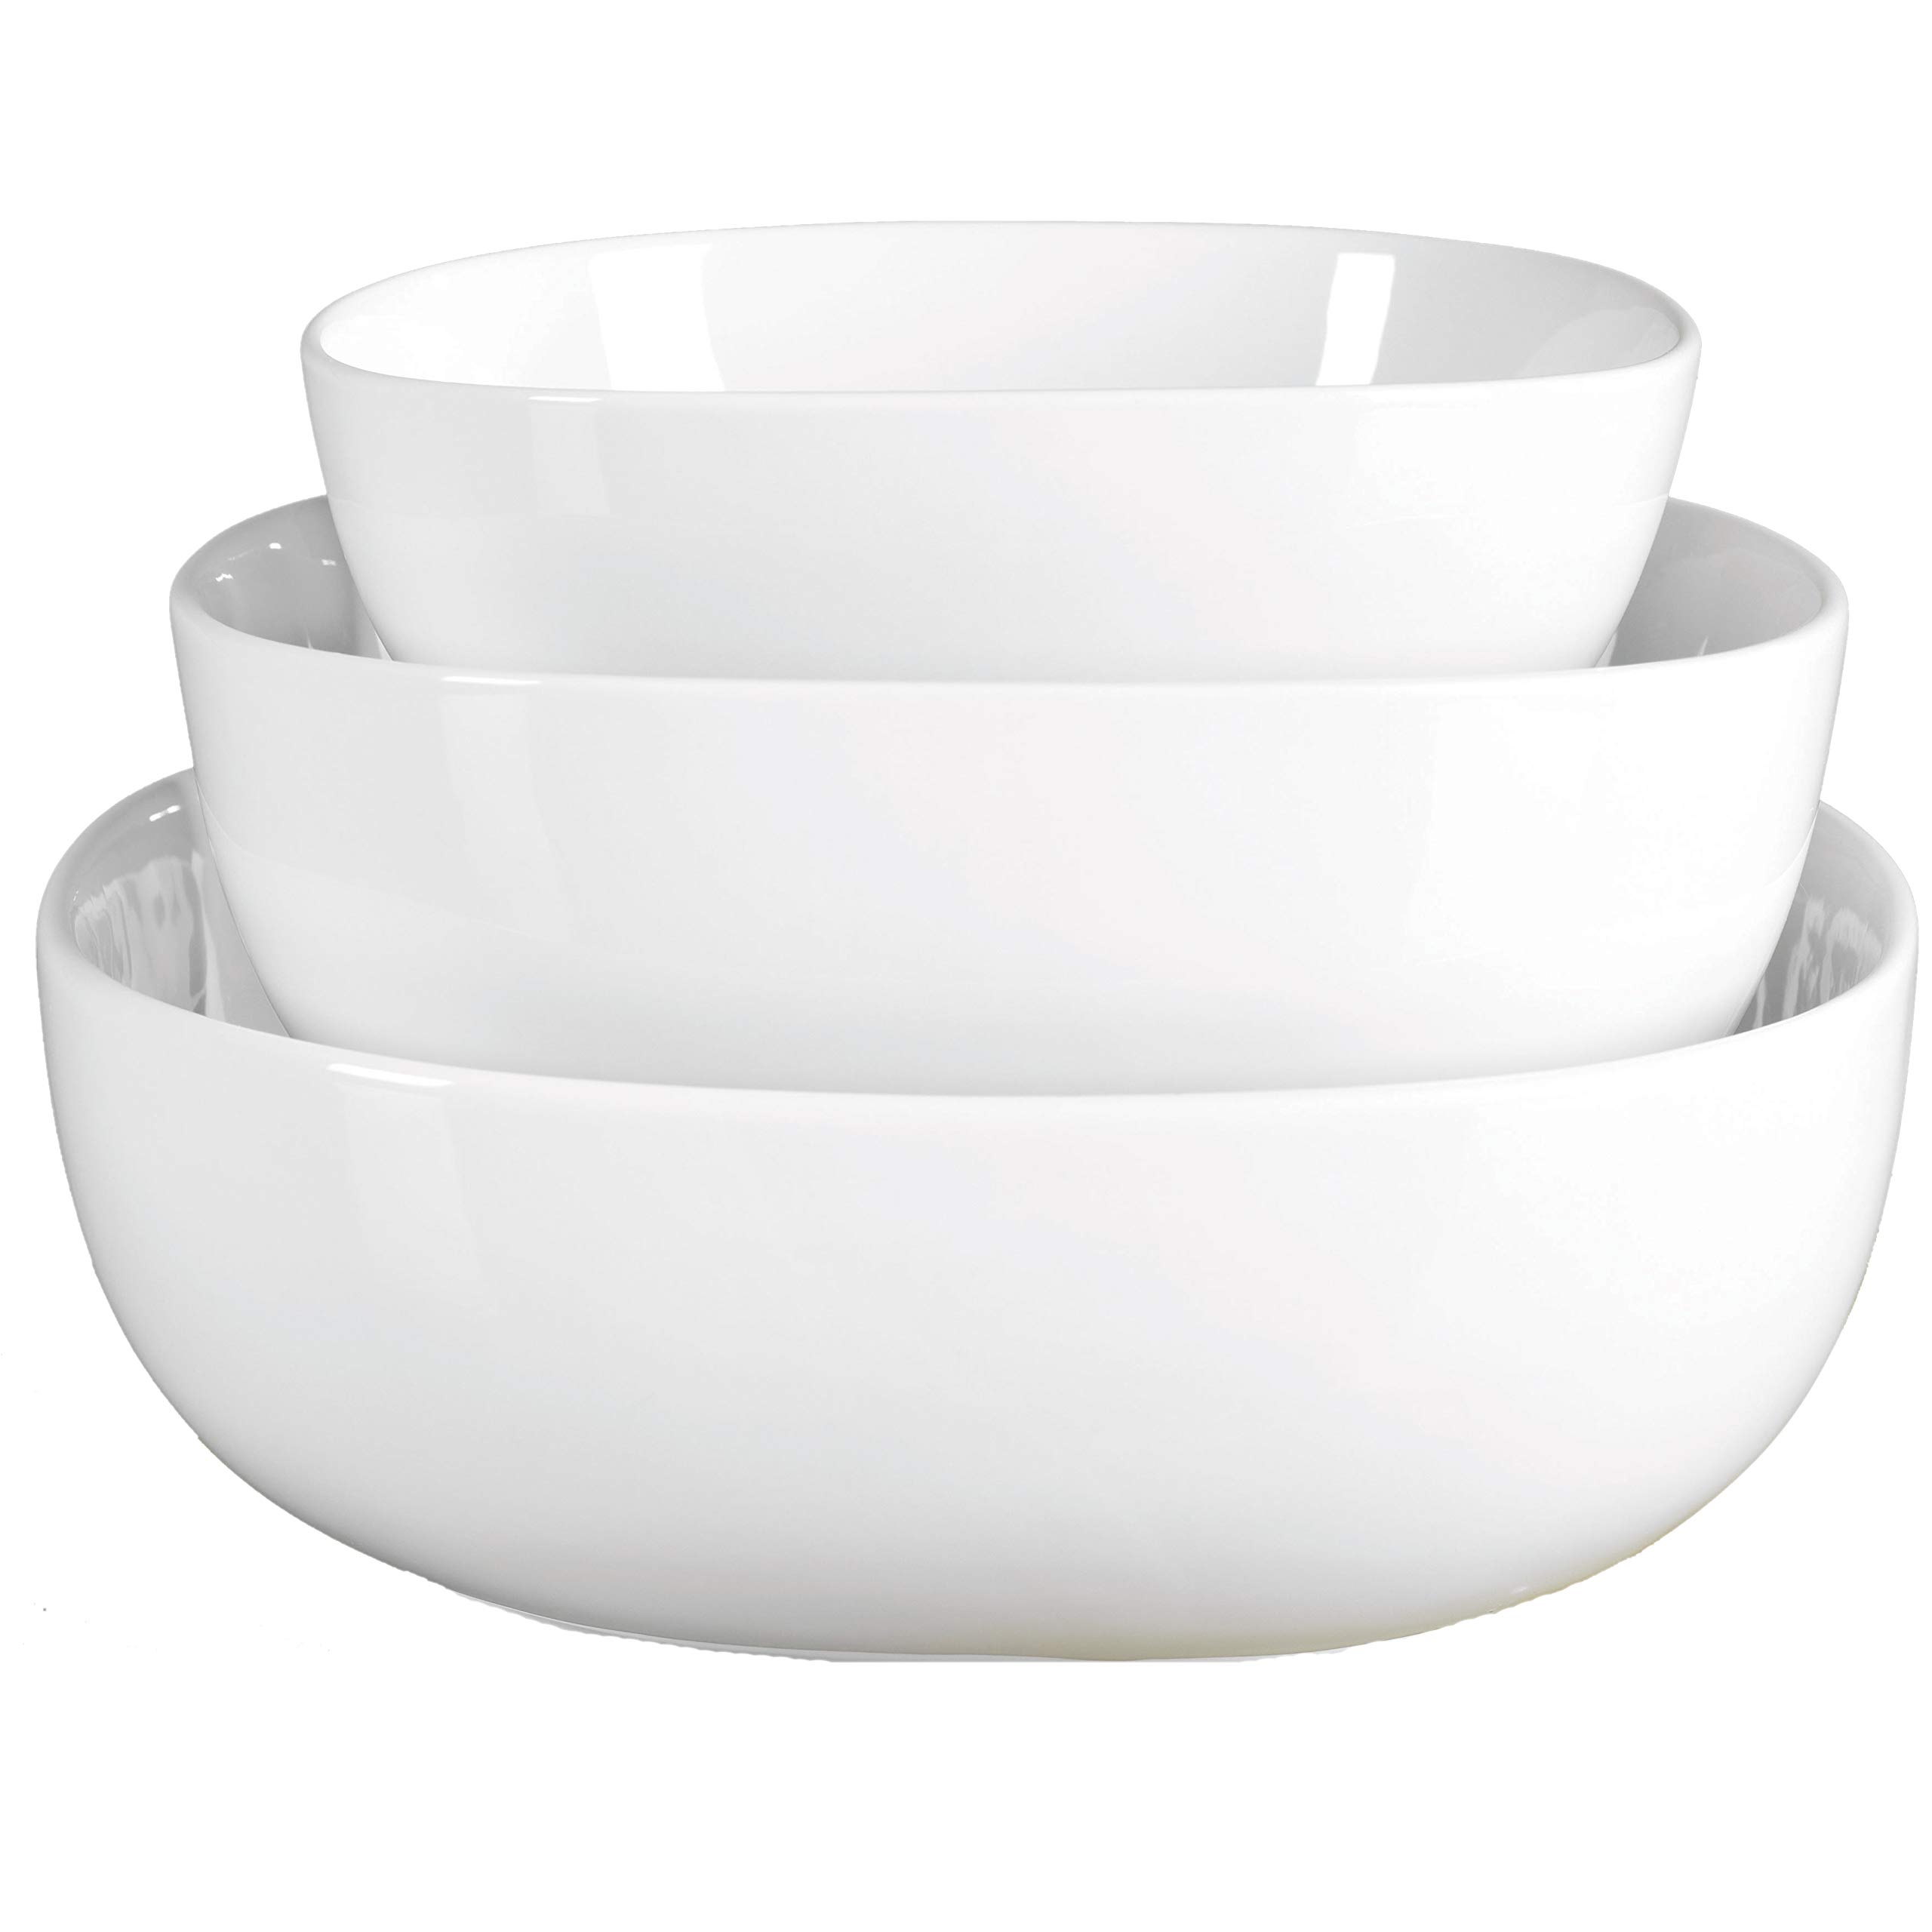 Denmark White Porcelain Chip Resistant Scratch Resistant Commercial Grade Serveware, 3 Piece Serving Bowl Set by Denmark Tools For Cooks